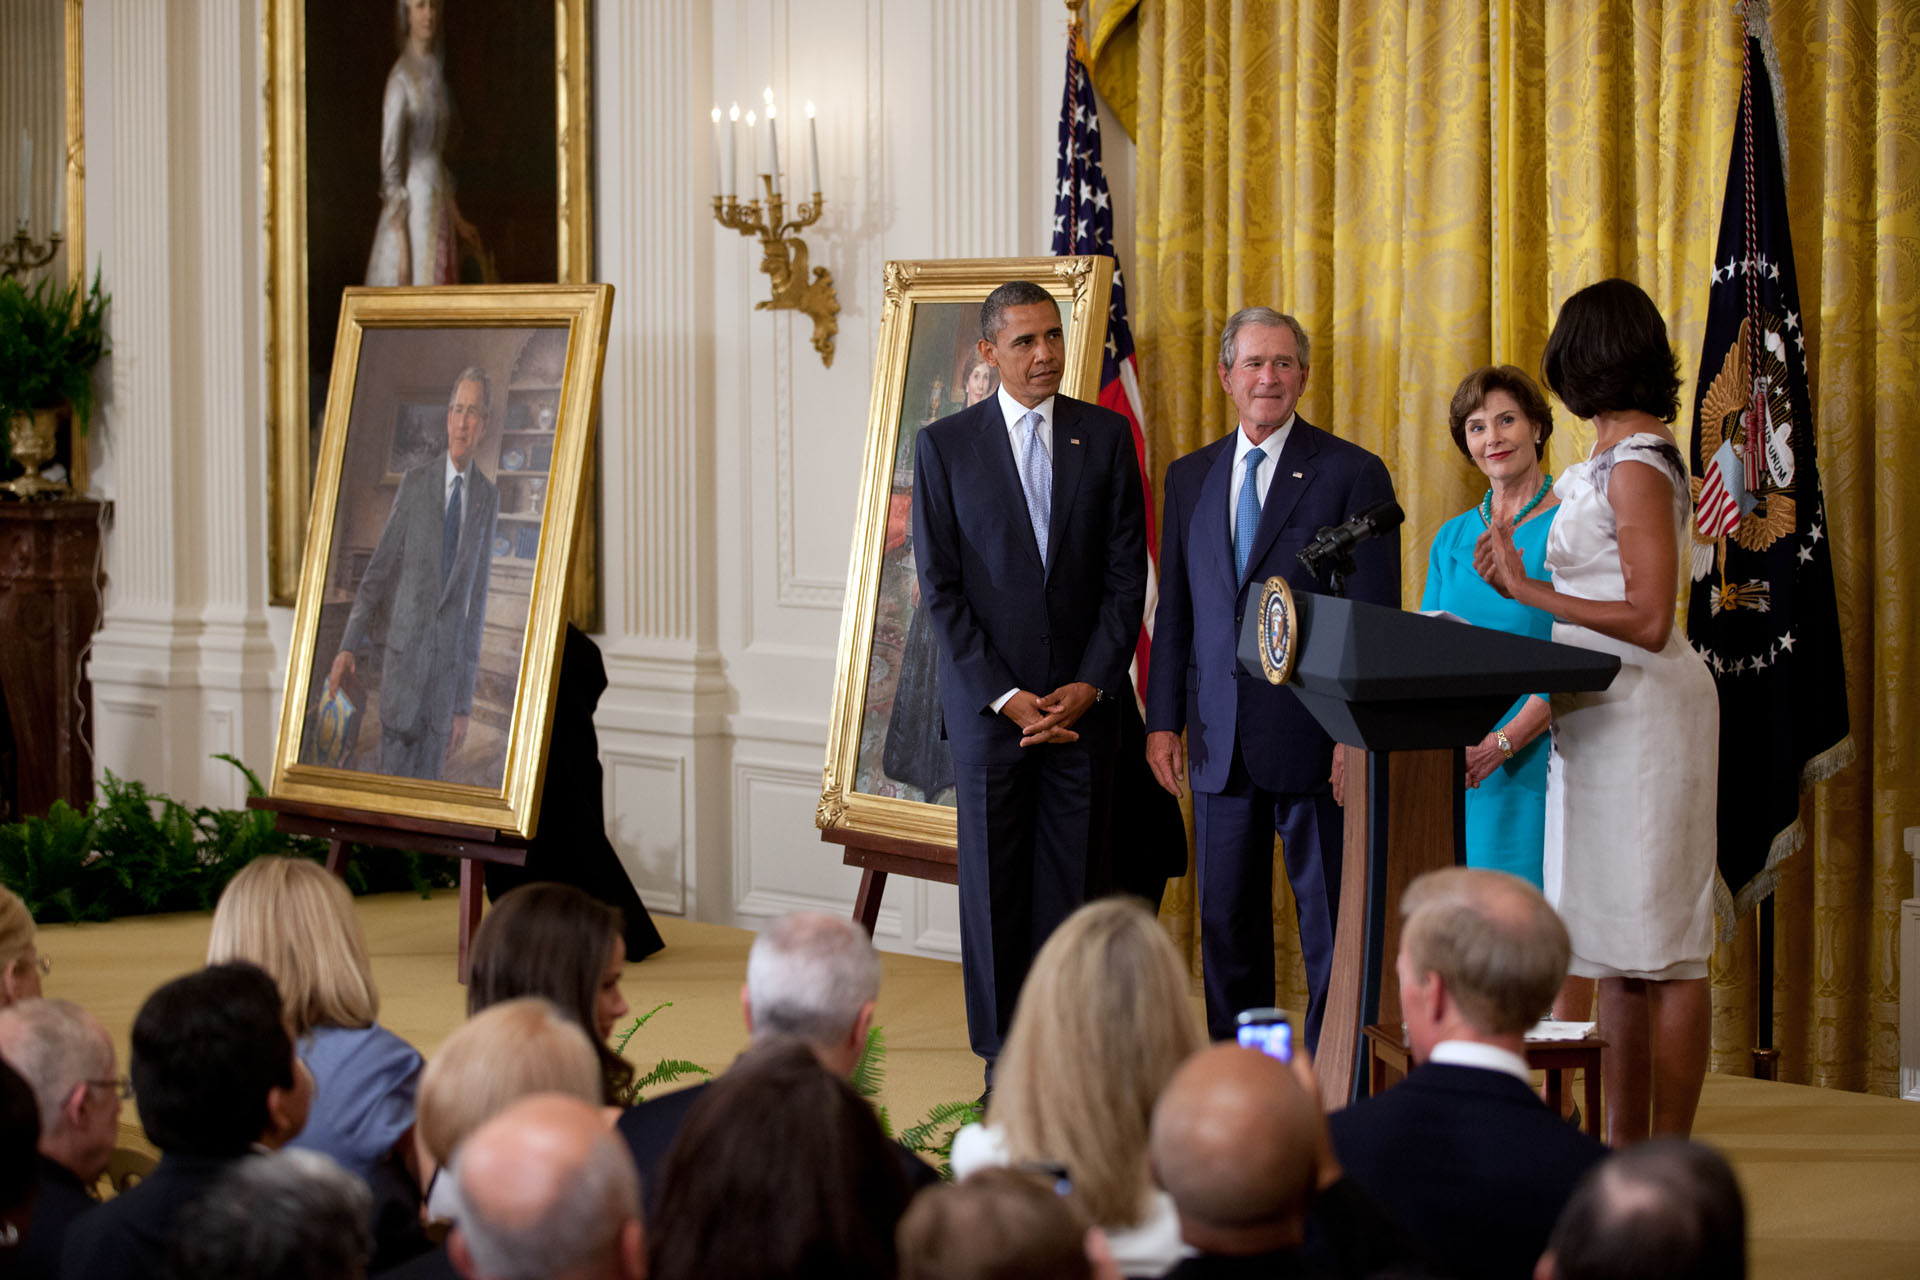 President Obama Unveils The Official Portrait Of President